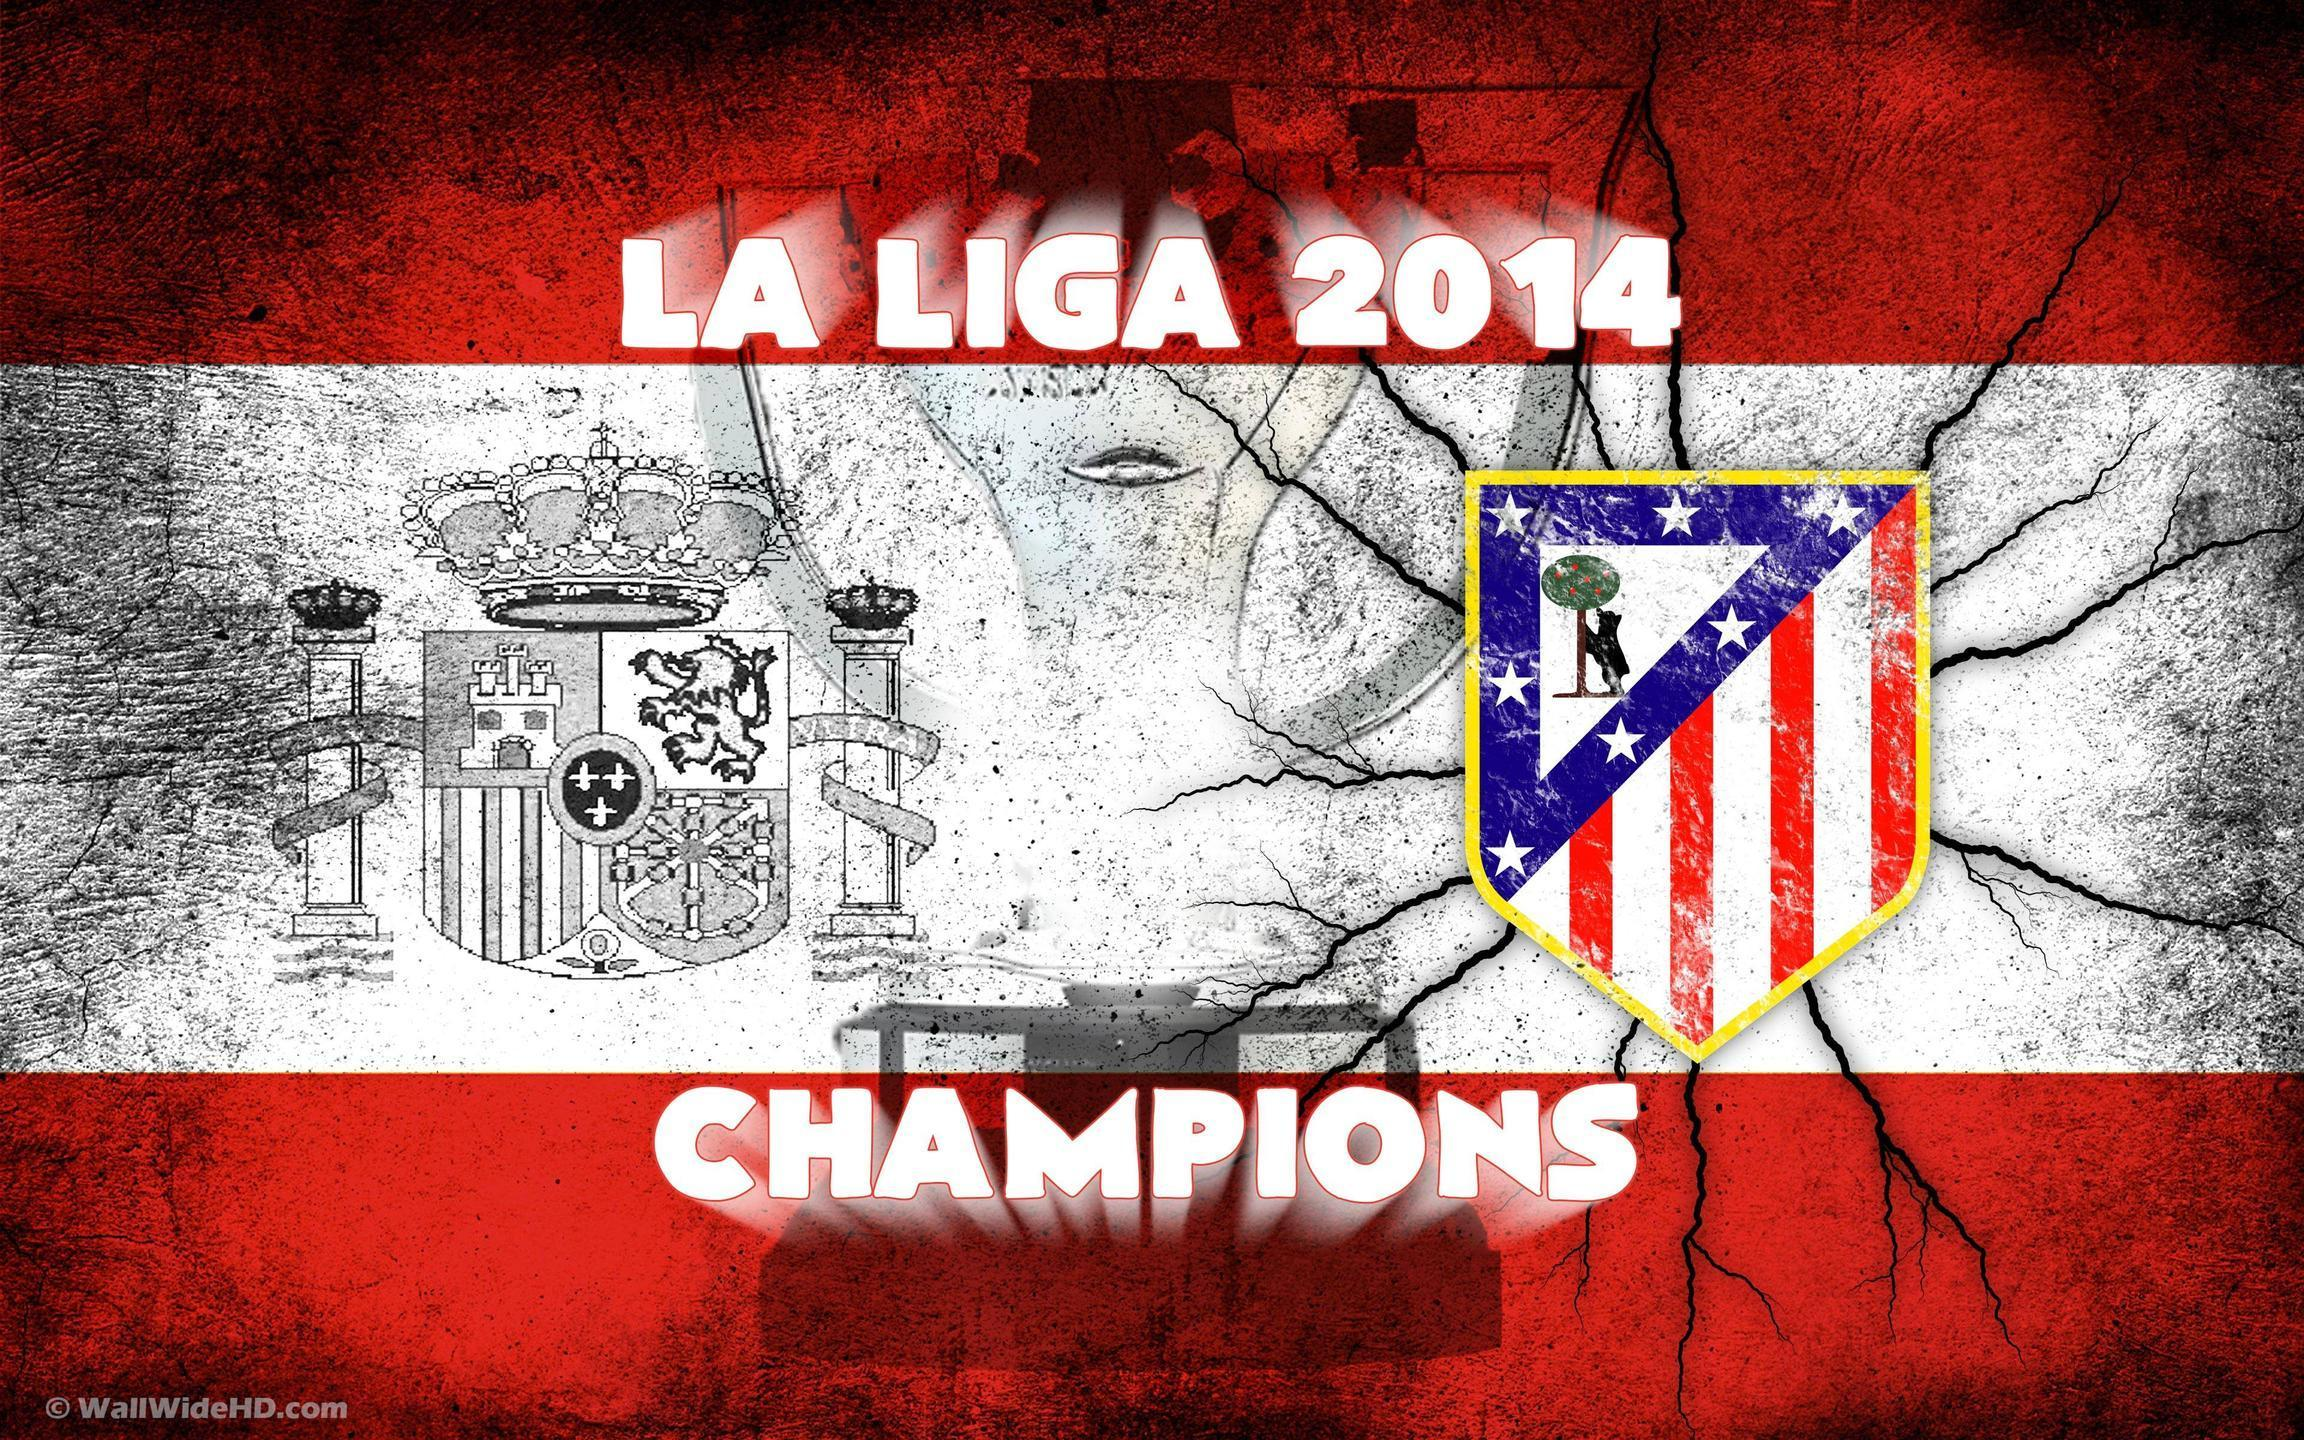 Wallpapers Tagged Atletico Madrid Wide or HD | WallWideHD.